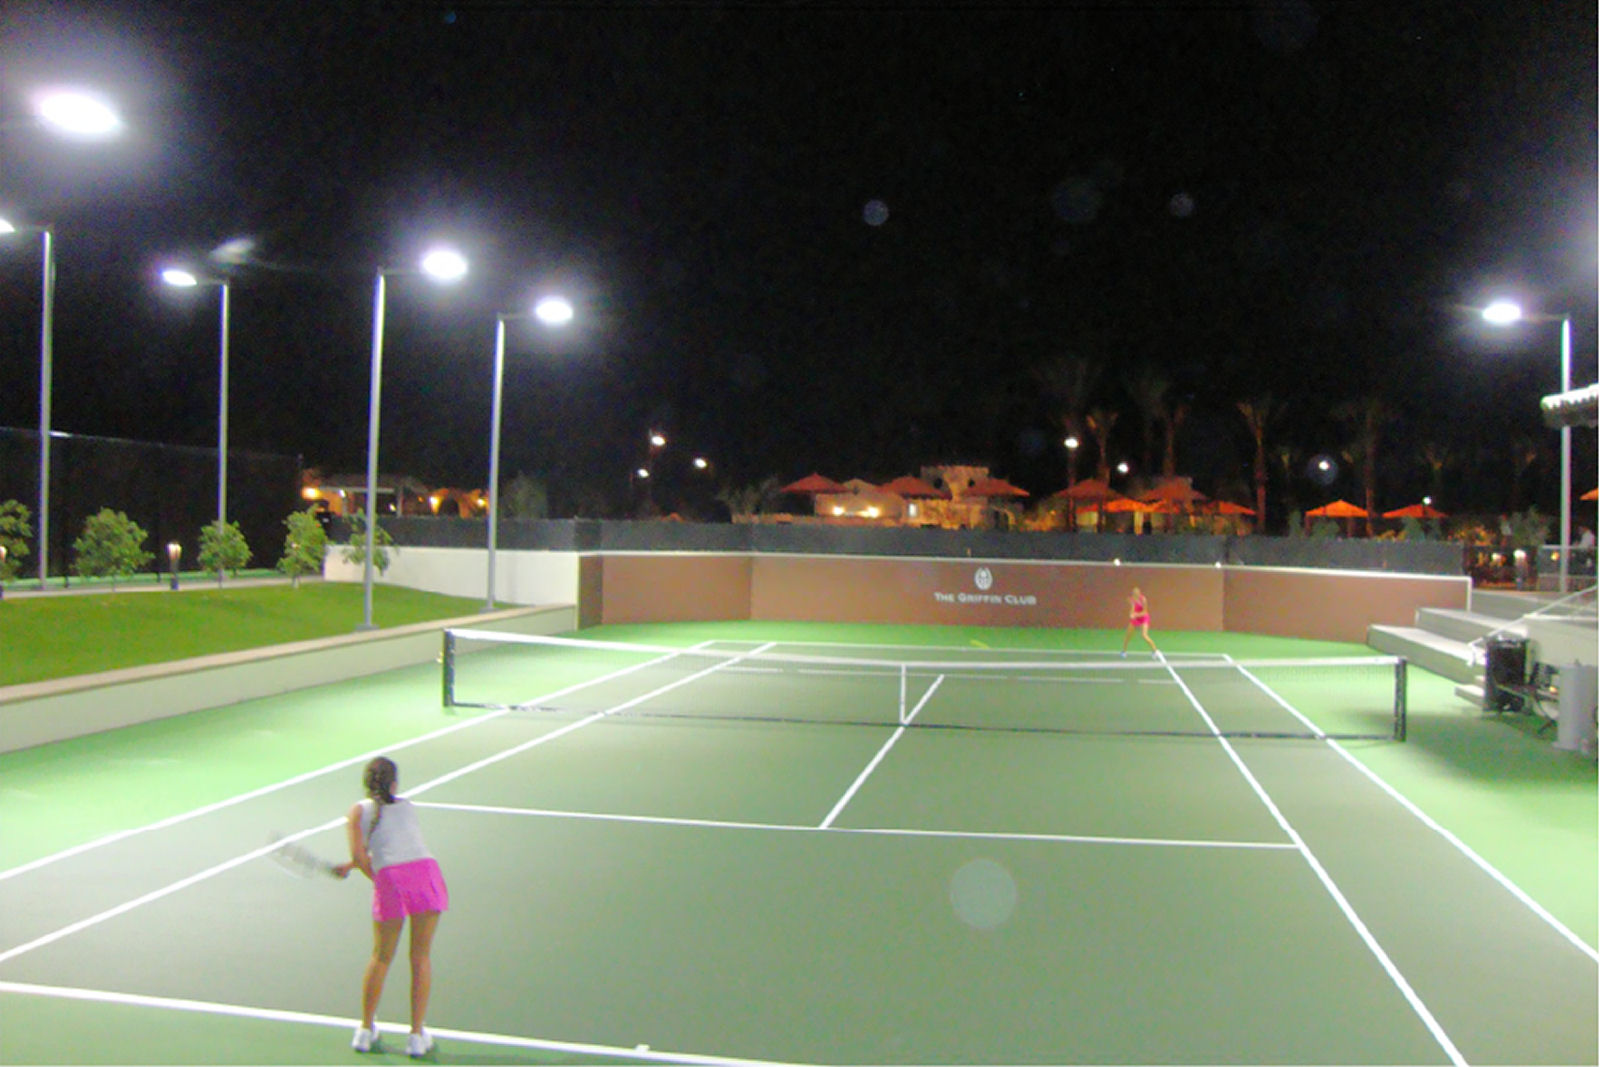 outdoor tennis court-6